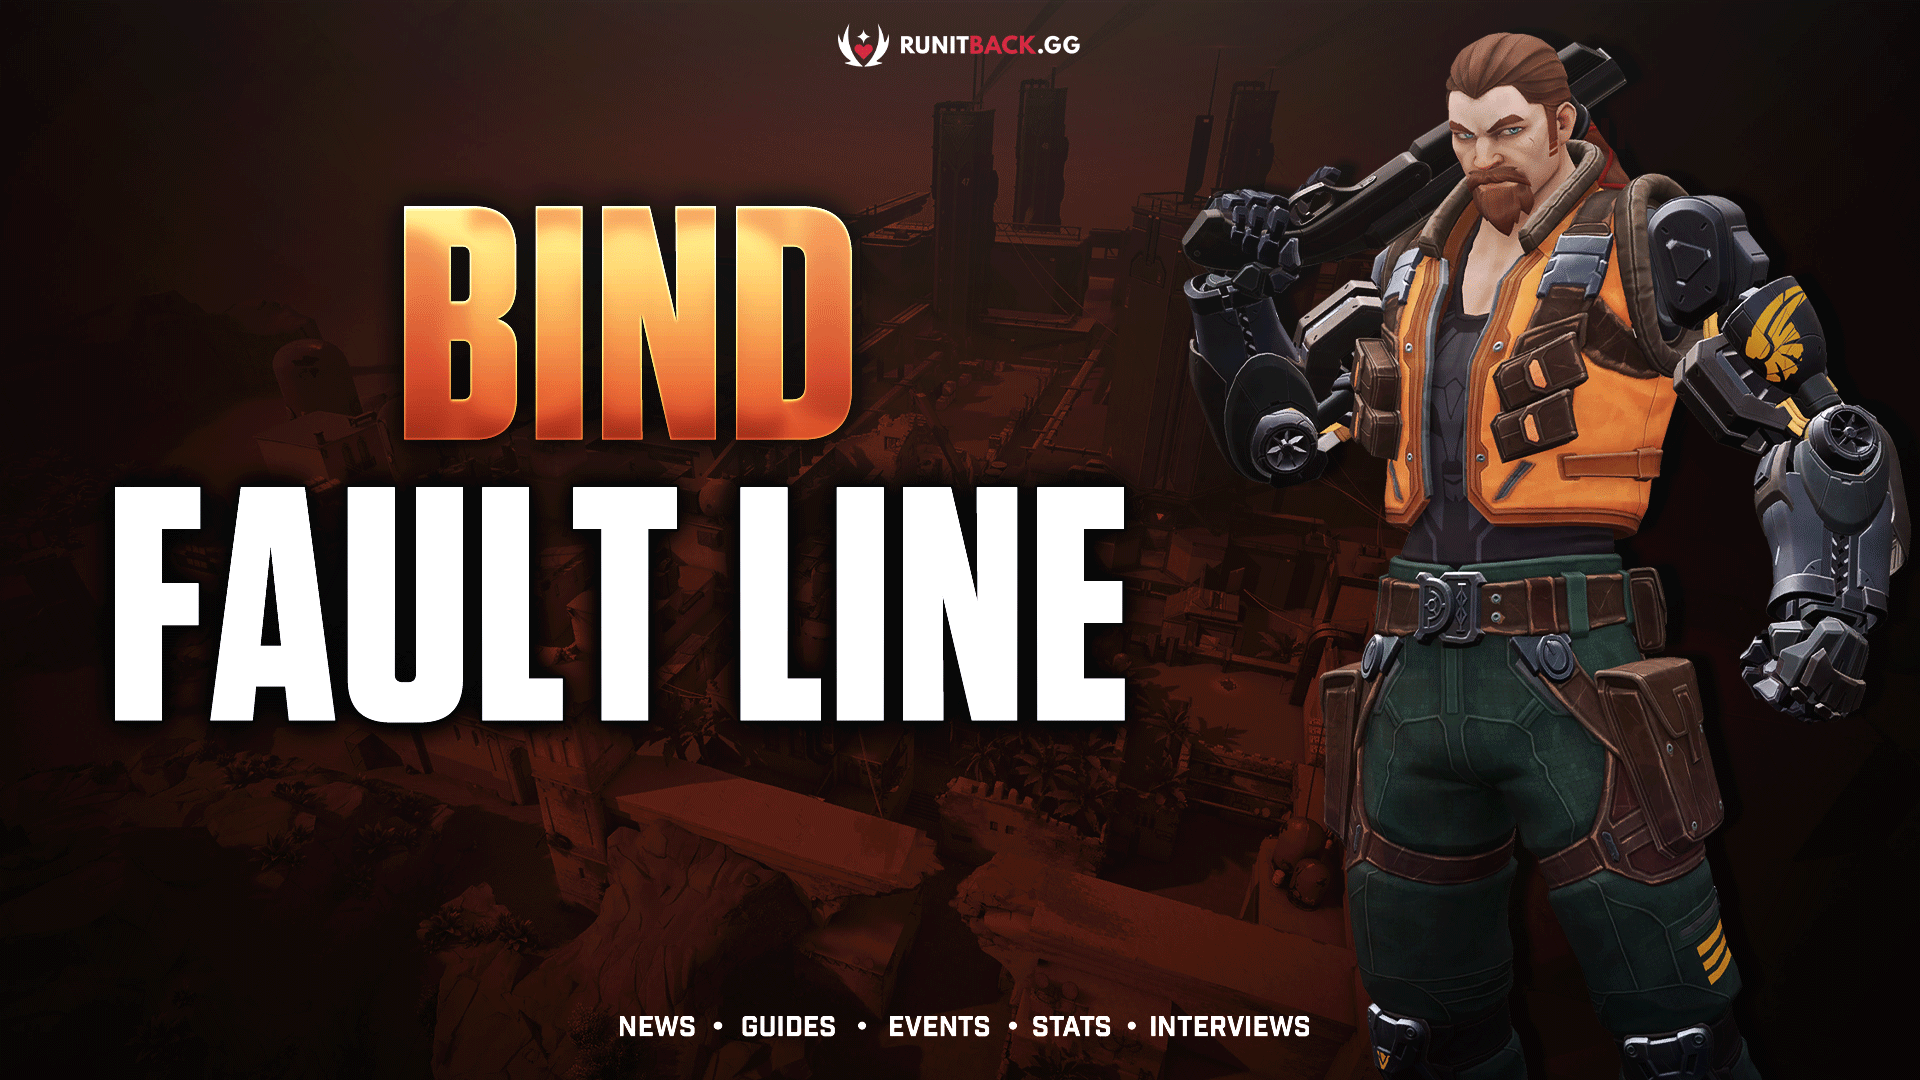 Breach Fault Line Guide: Bind